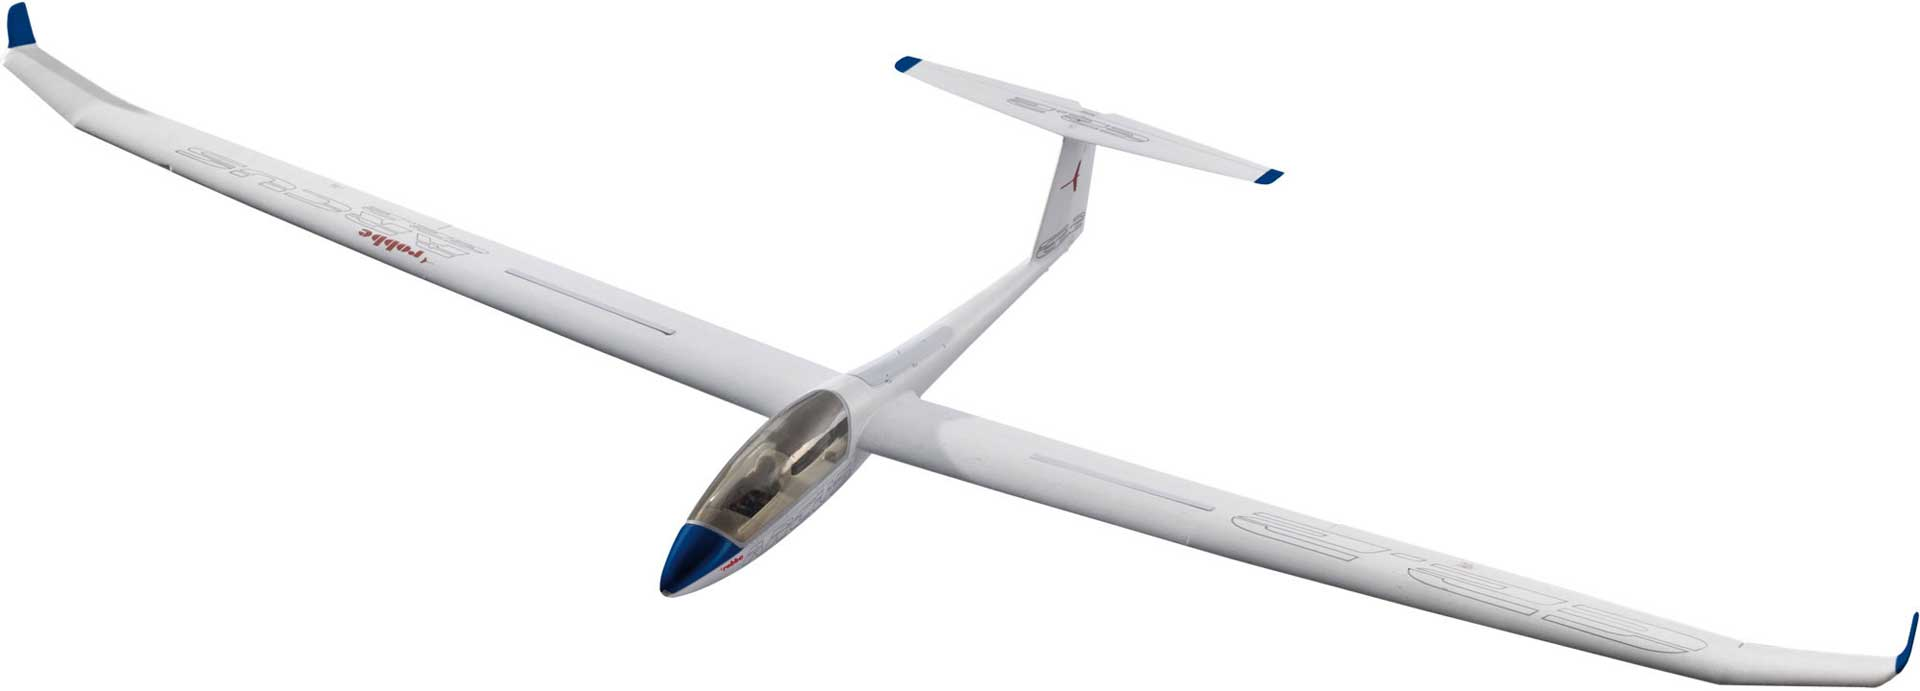 Robbe Modellsport ARCUS E 2.2 ARF(PNP) with retract power unit, retract landing gear and spoiler